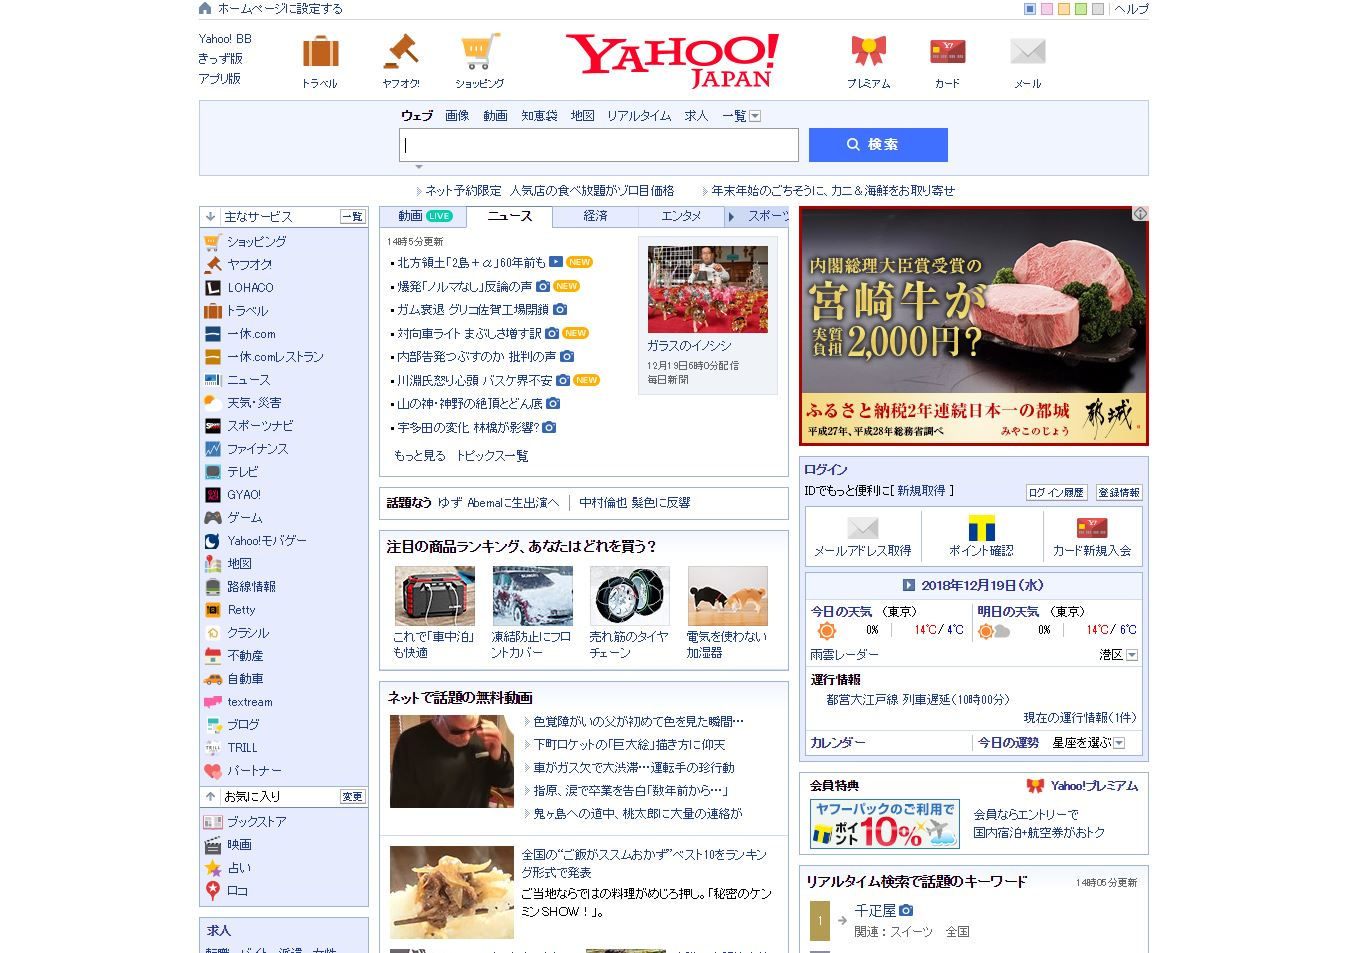 Your Guide to Yahoo! Japan | Info Cubic Japan Blog